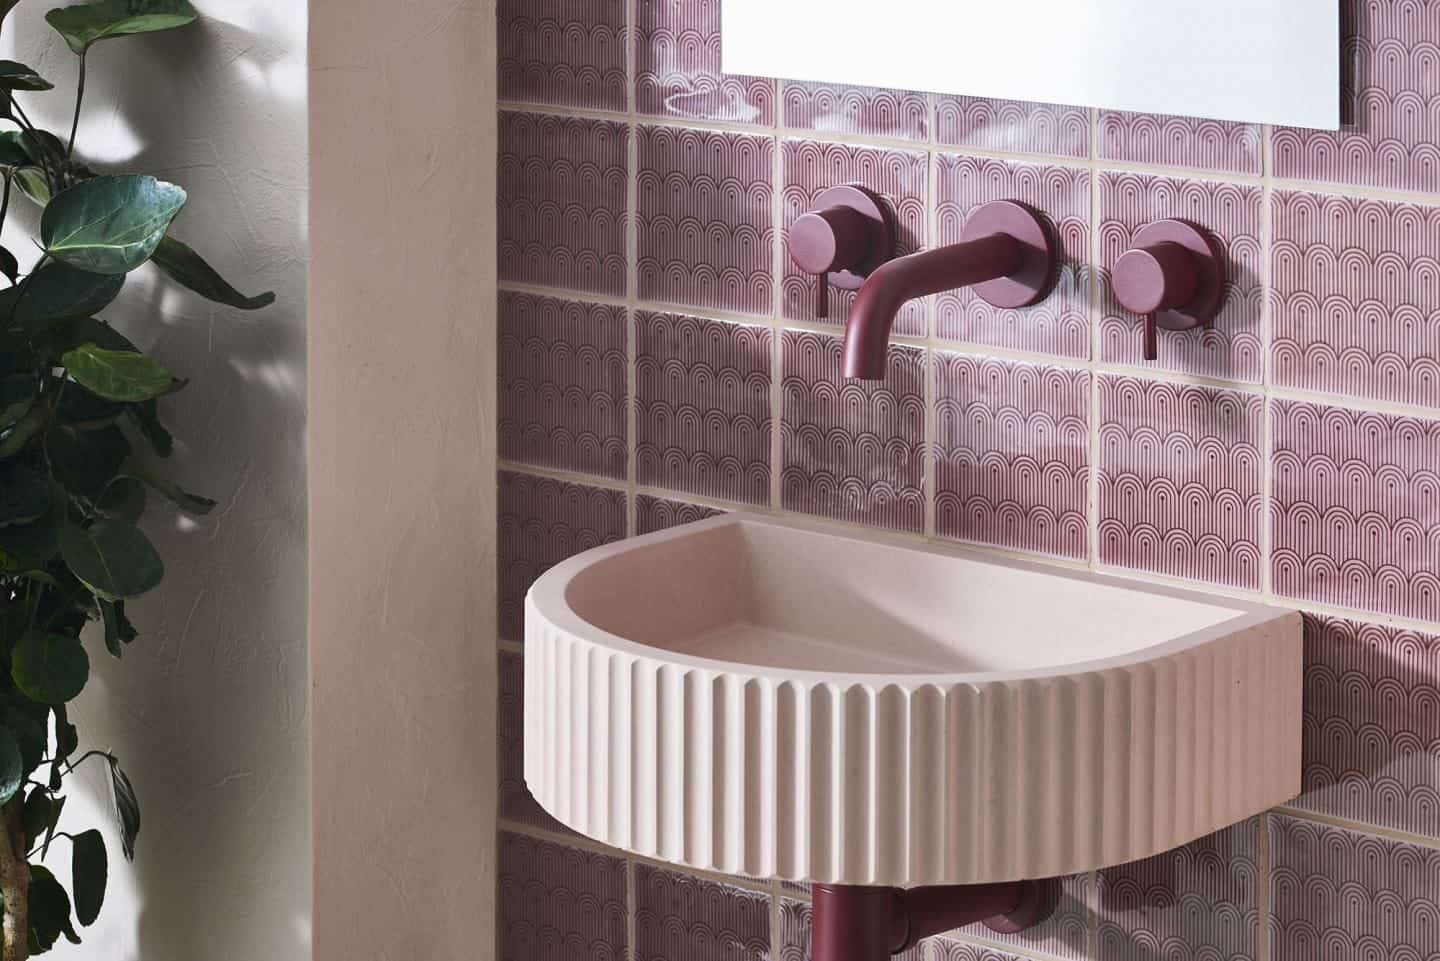 Original Style and 2LG Deco Tayberry Tile of the Year 2020 used as a bathroom backsplash with a Kast concrete basin